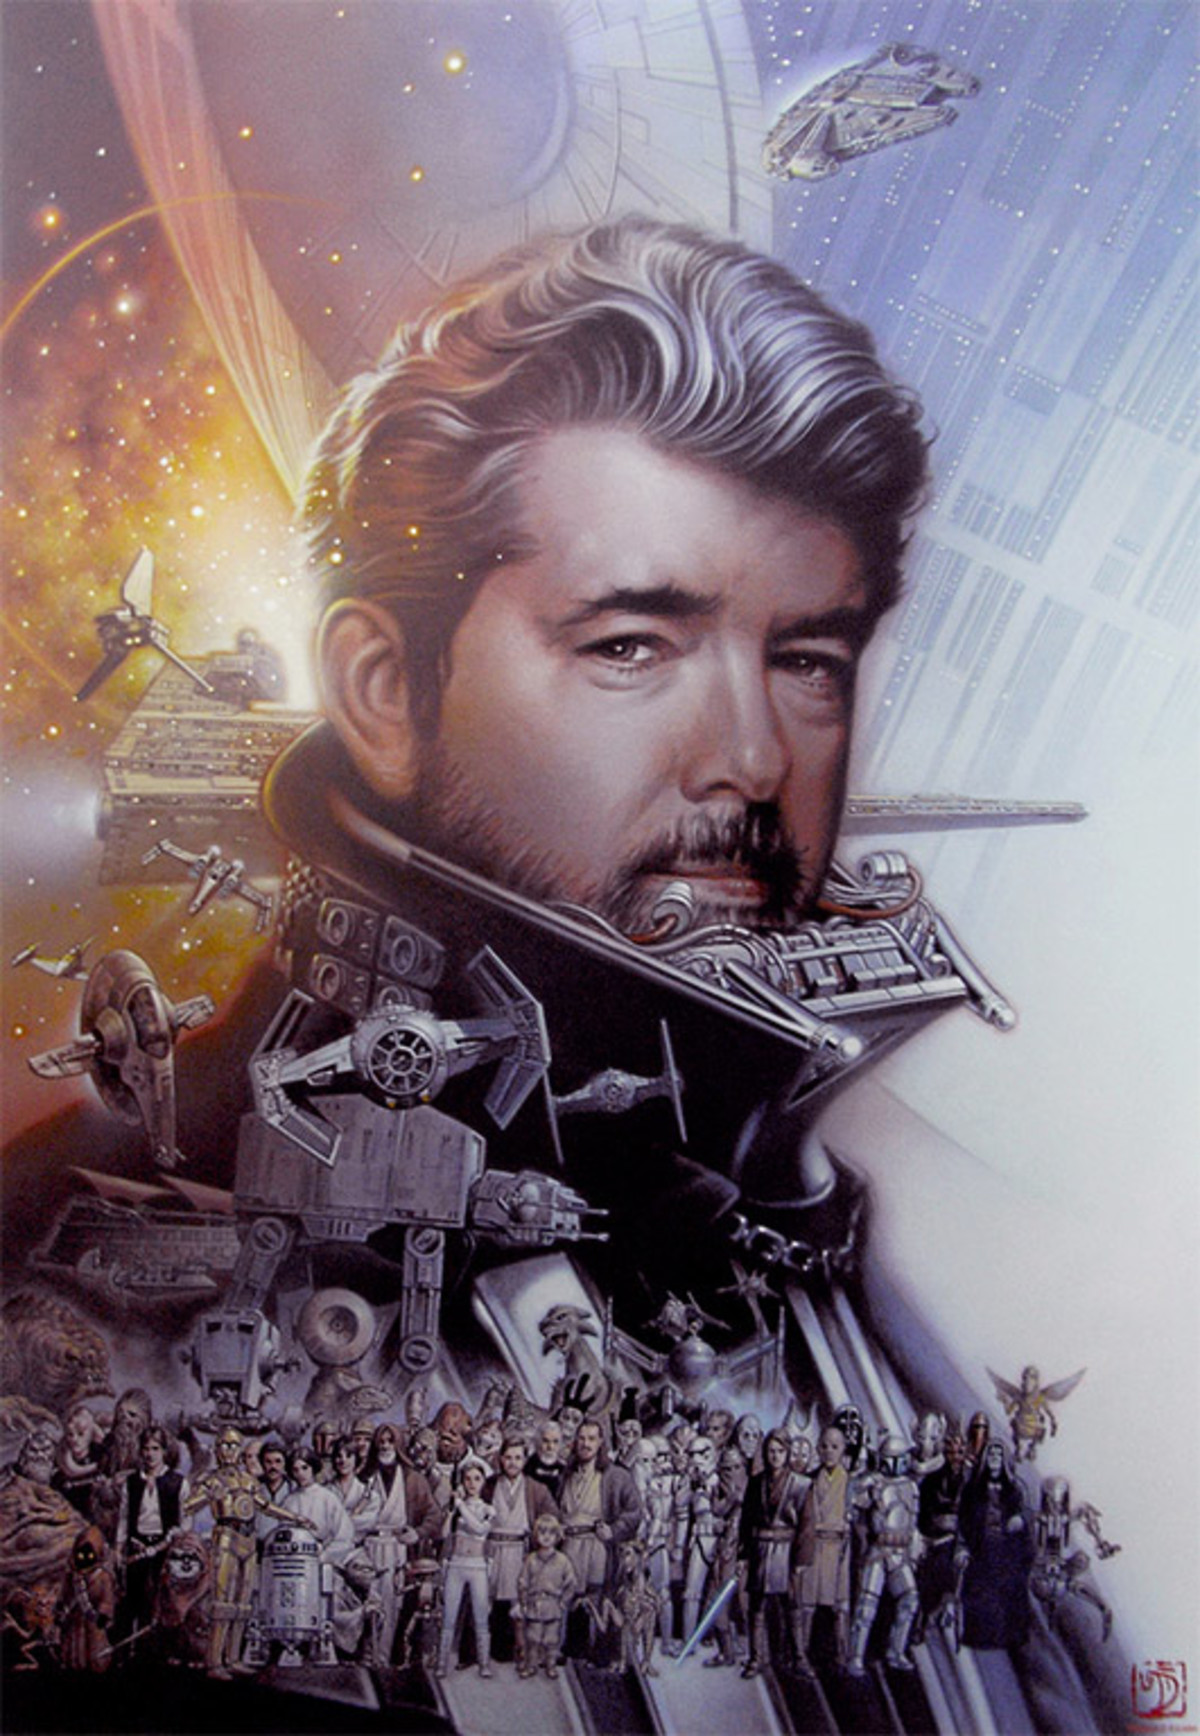 Happy Birthday George Lucas. George Lucas is turning 74 today, lets hope he has a great birthday.. Well, Happy Birthday to Georgy Boy. His work had a HUGE impact on my upbringing.